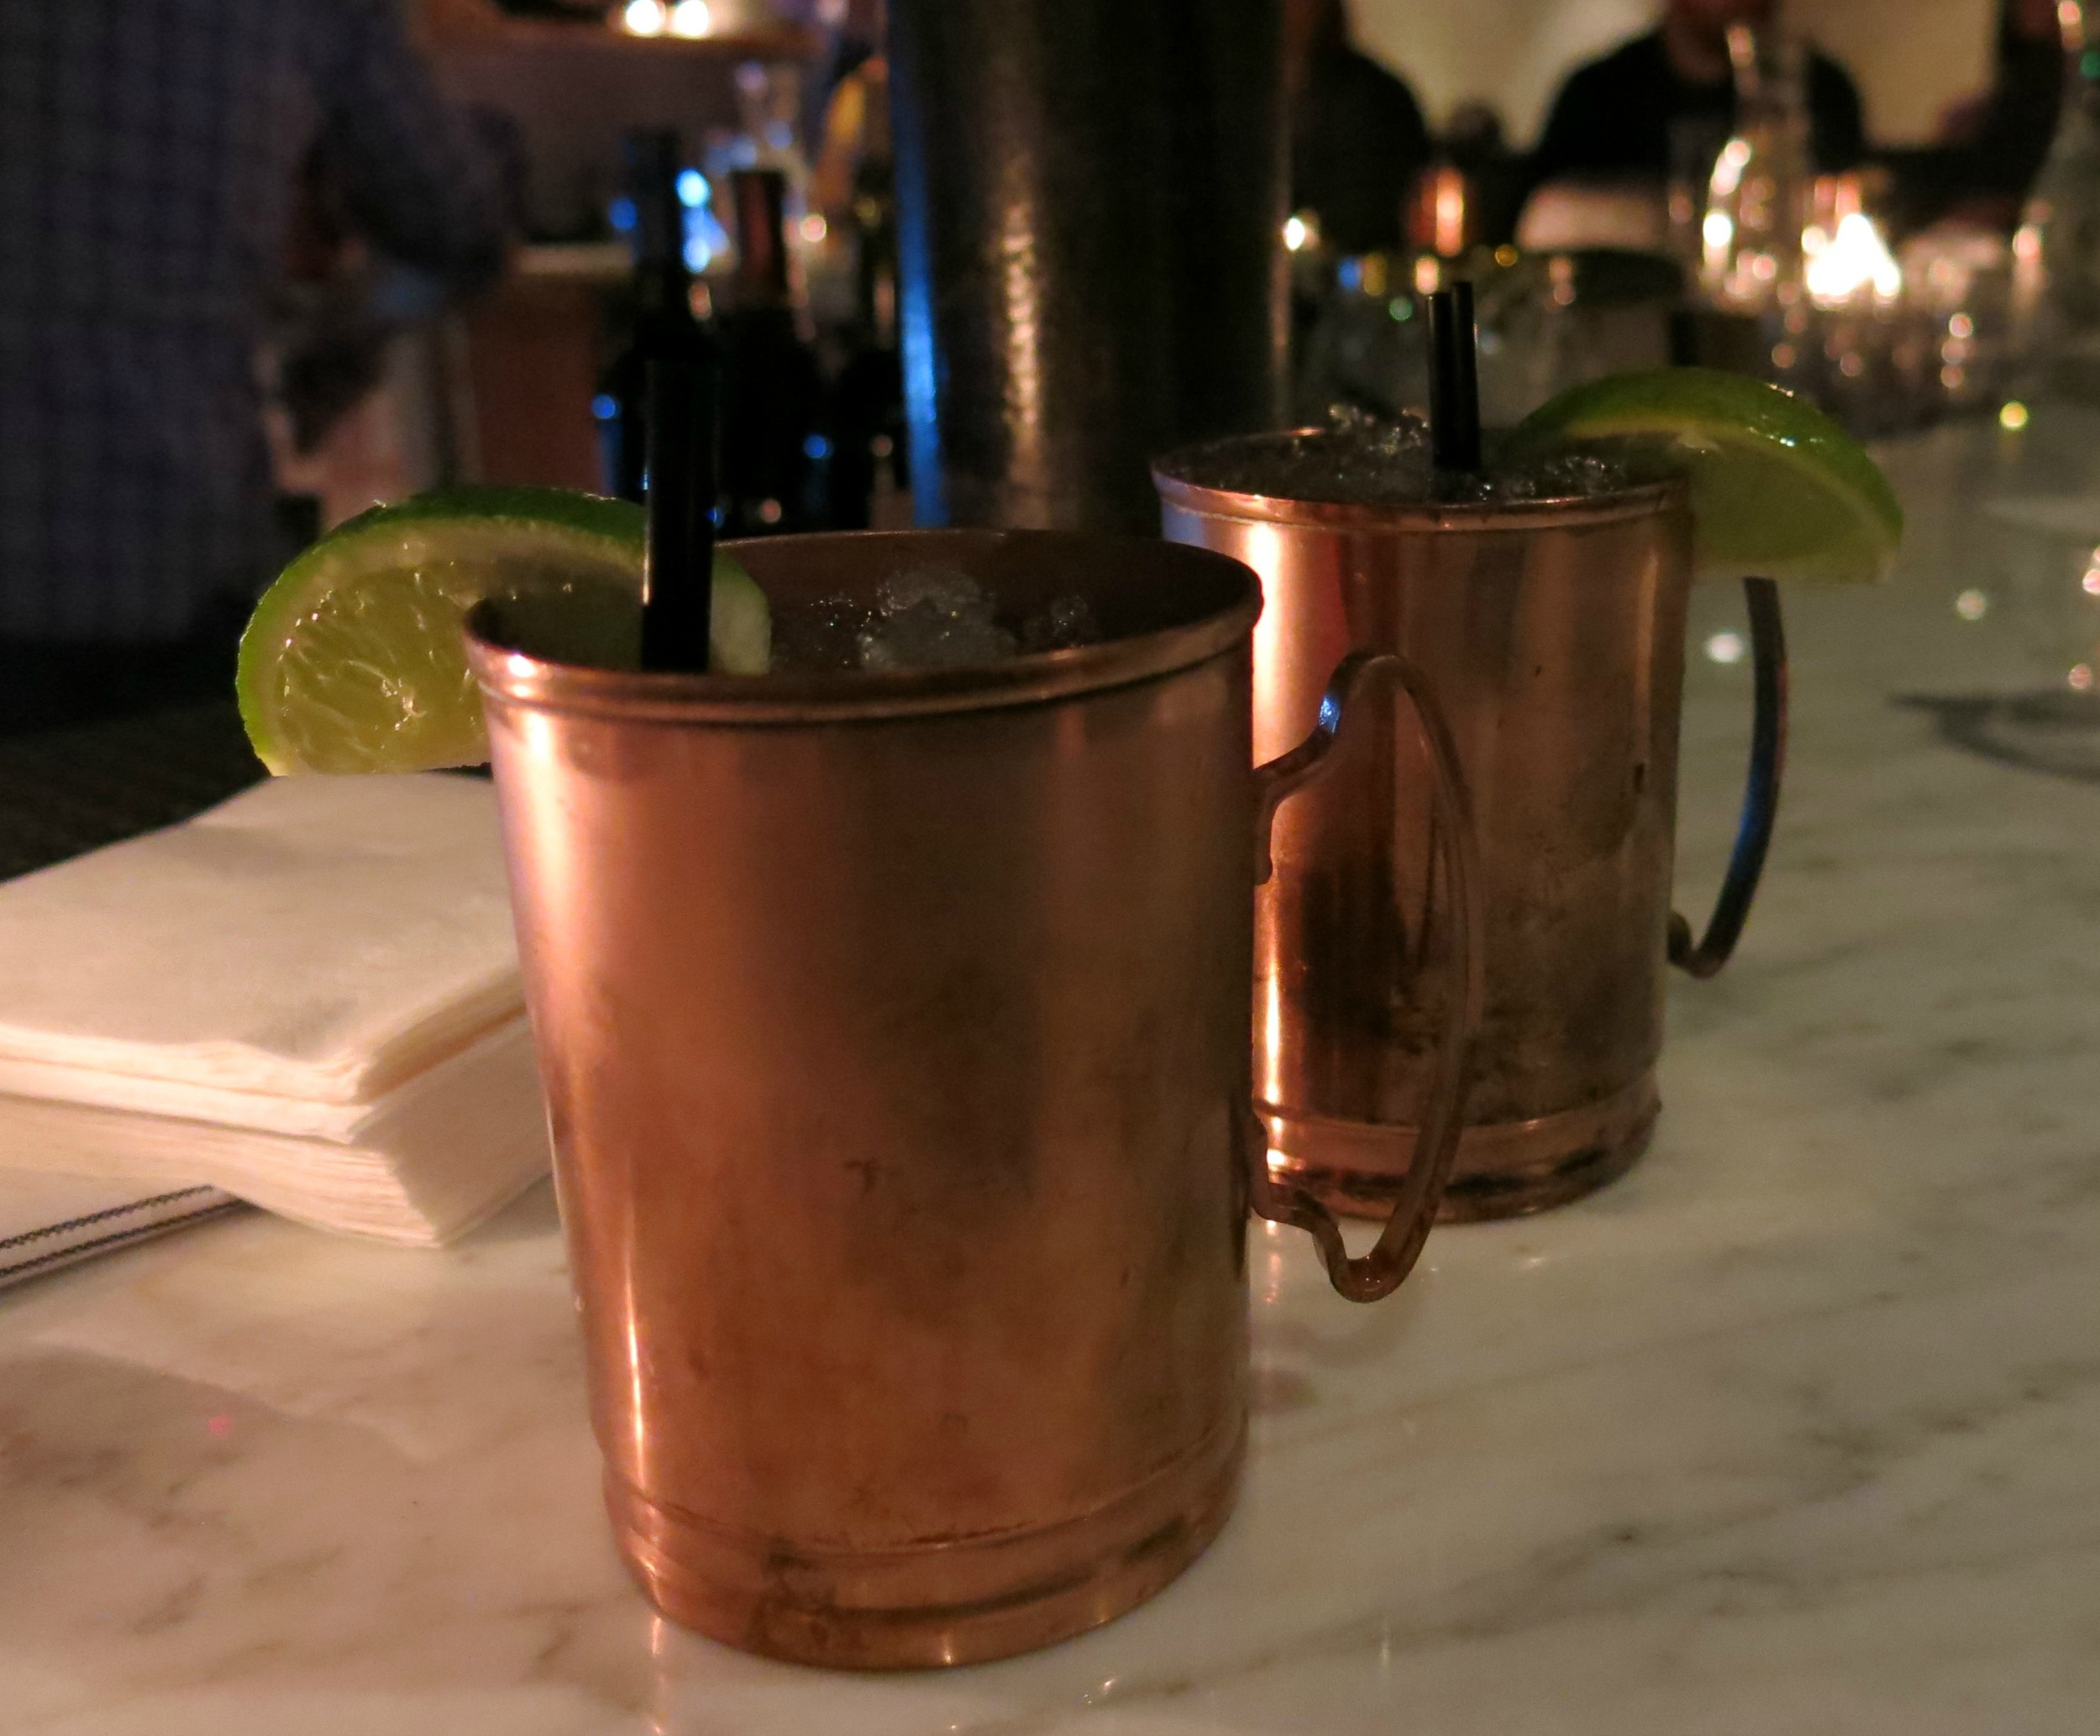 If you're in the market for some copper mugs, Amazon.com is a good place to start. With buying options to fit any budget, there's no need to pilfer Ward 8's inventory.